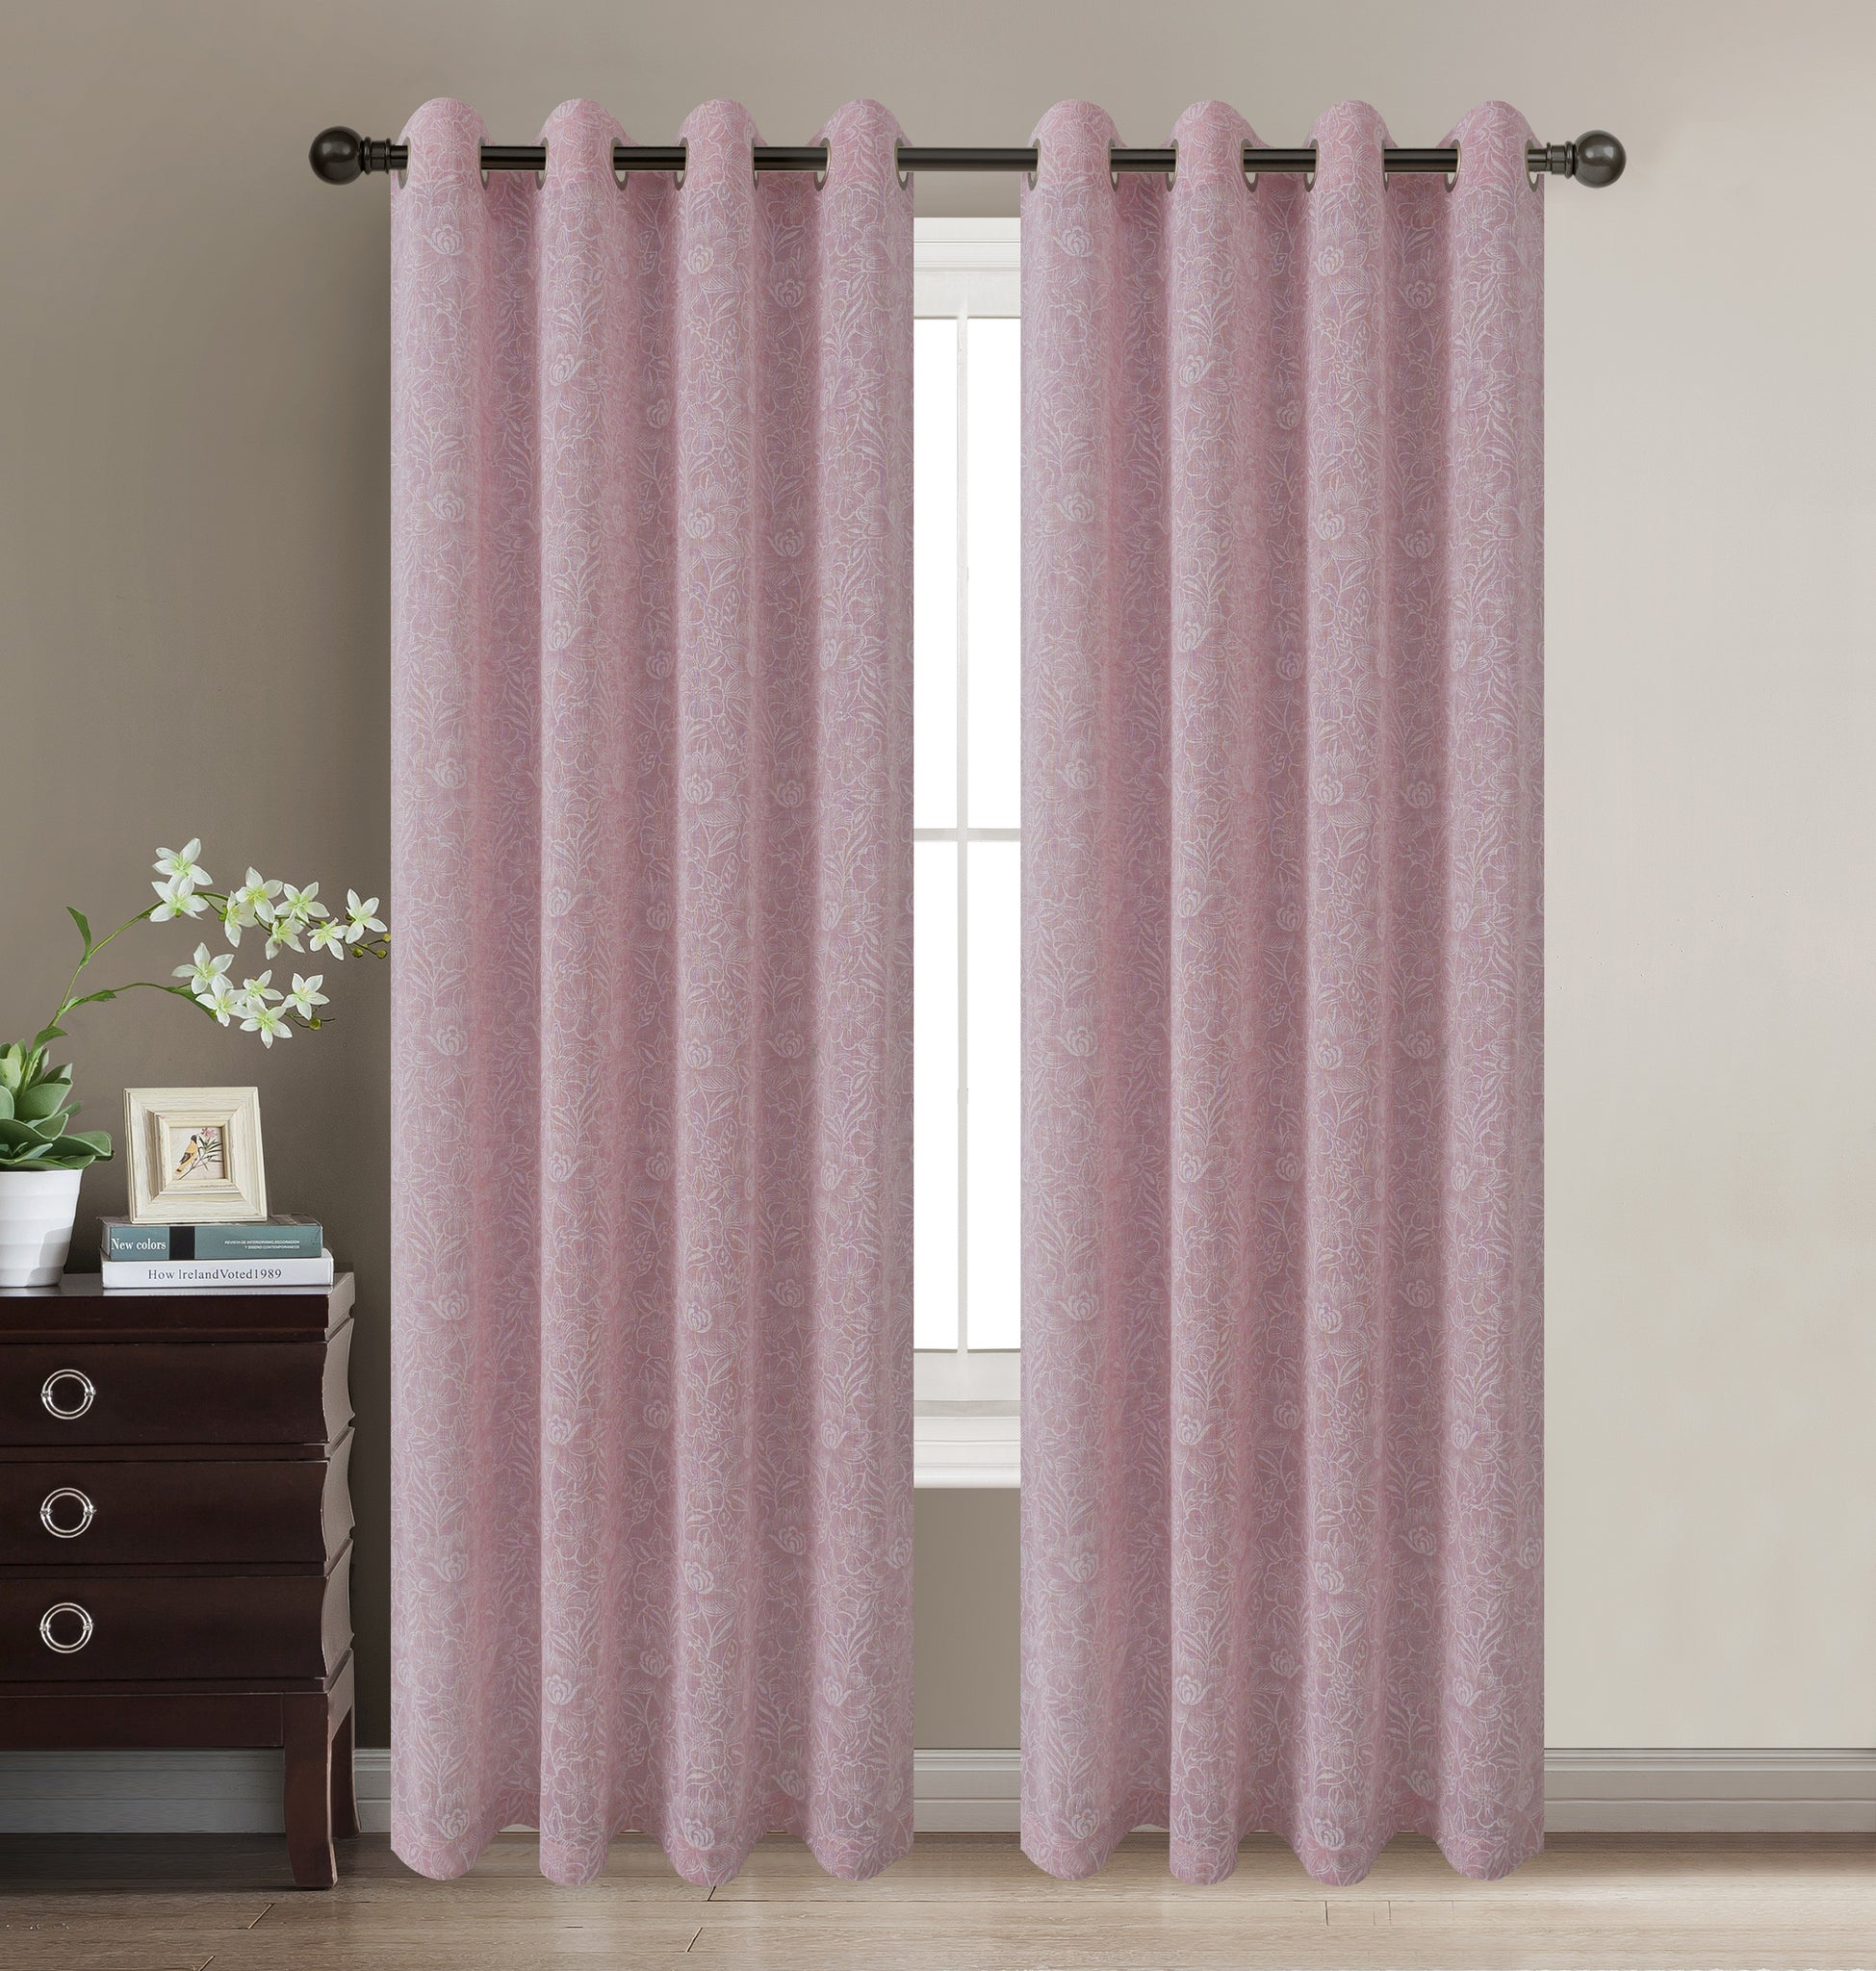 "Daisies Semi-Sheer Grommet Panel 84"" - Pink C42068- Marburn Curtains"